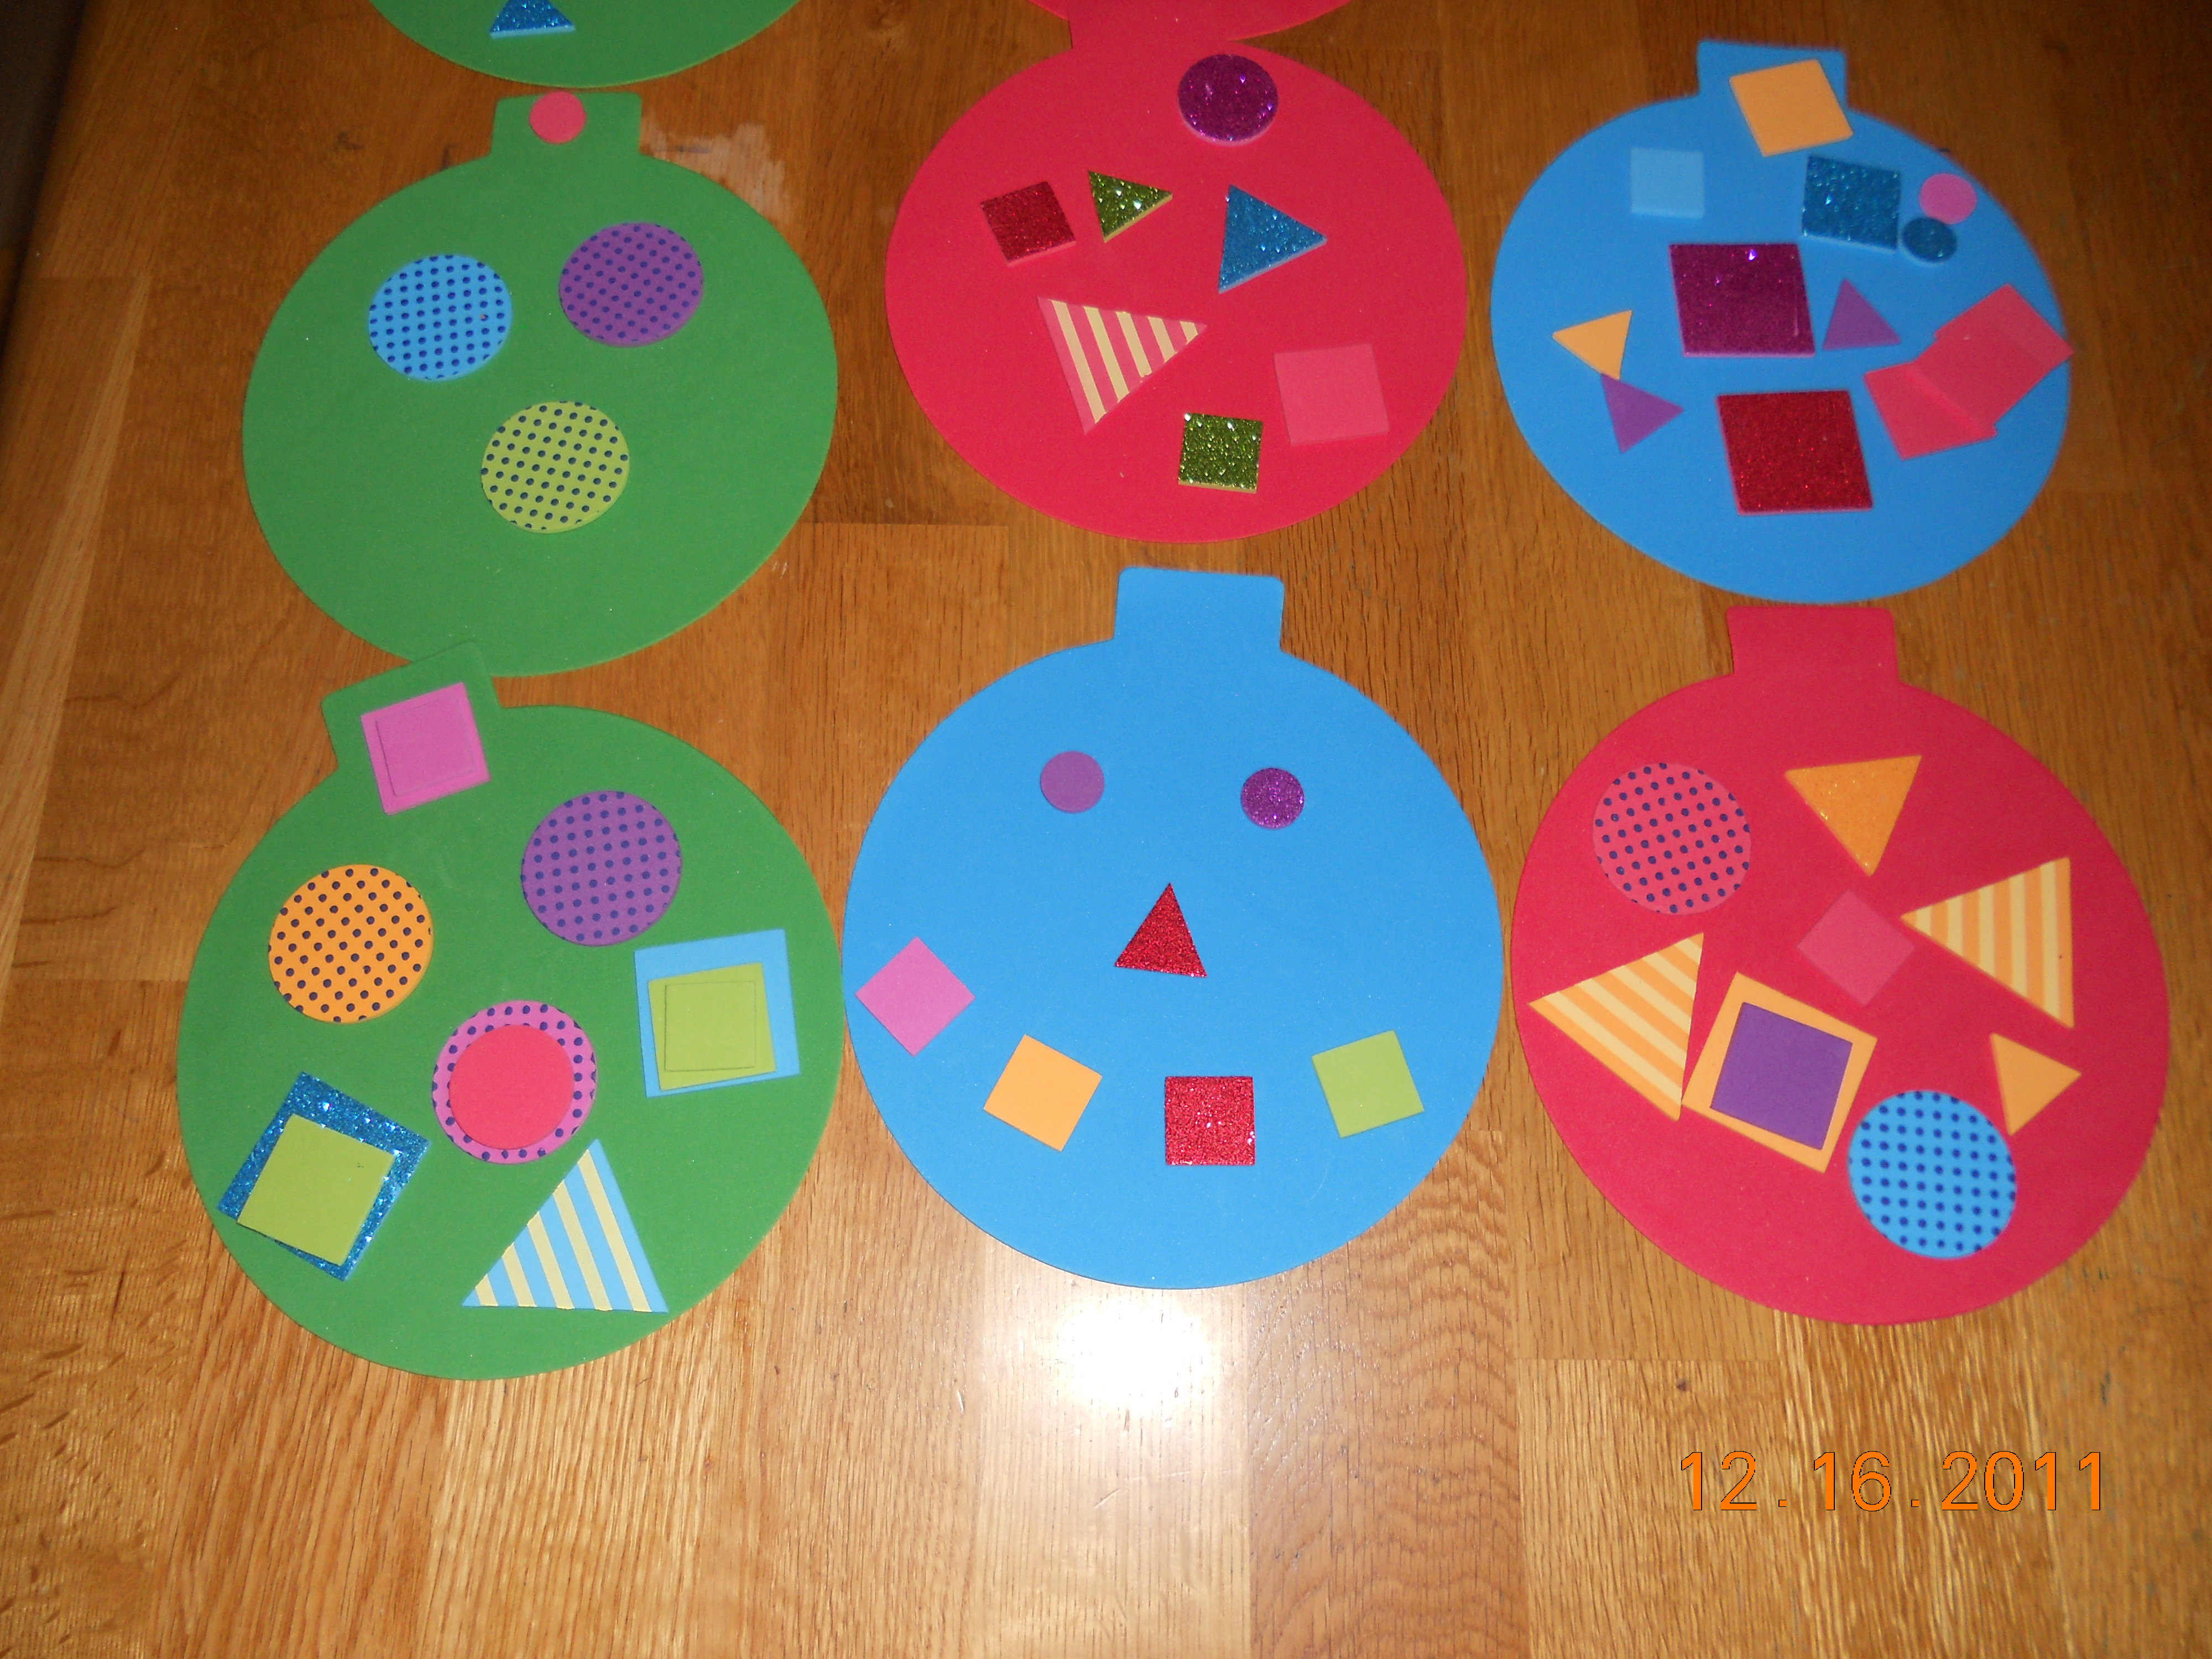 Christmas Craft Ideas For Preschoolers  15 Fun and Easy Christmas Craft Ideas for Kids – Miss Lassy